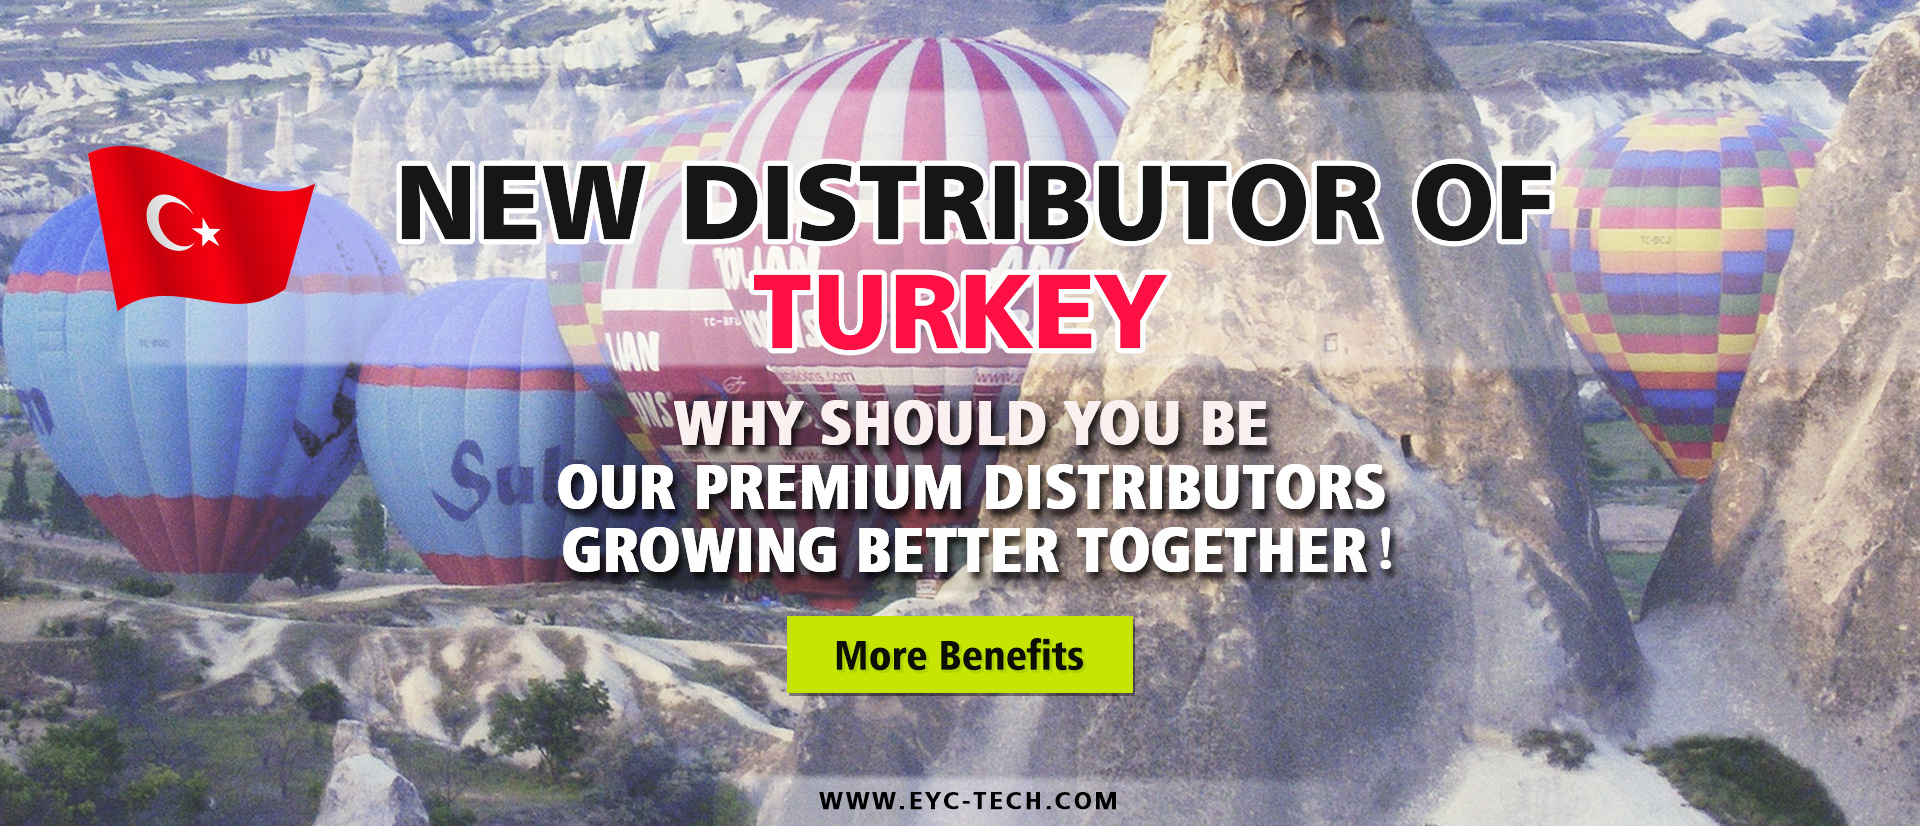 eYc New Premium Distributor of Turkey 2018